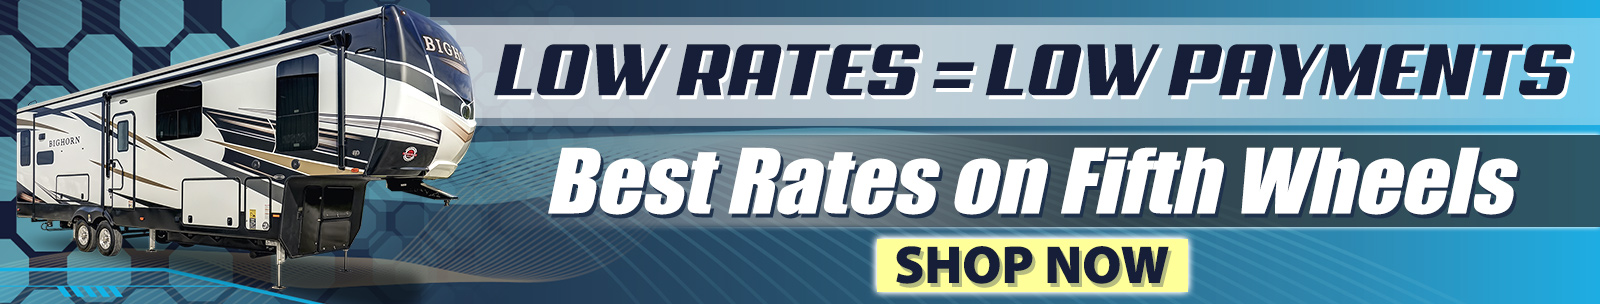 Low Rates=Low Payments